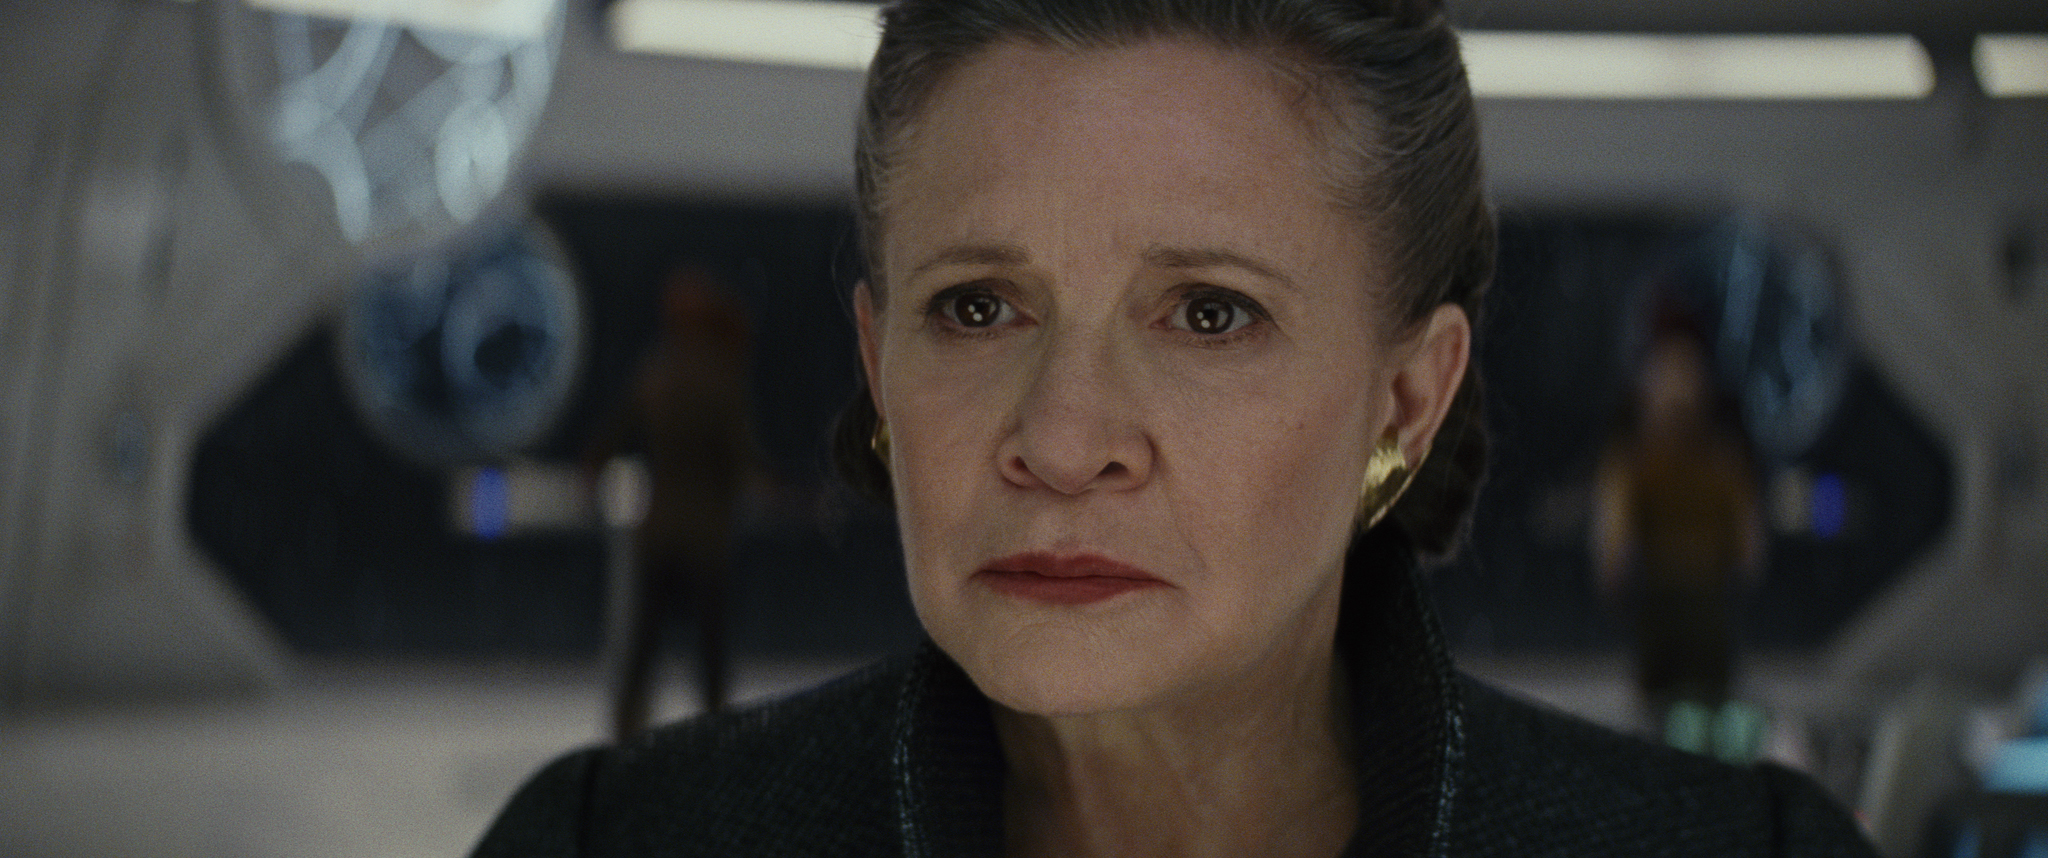 """The Last Jedi"" is dedicated to Carrie Fisher, so be sure to bring EXTRA tissues"